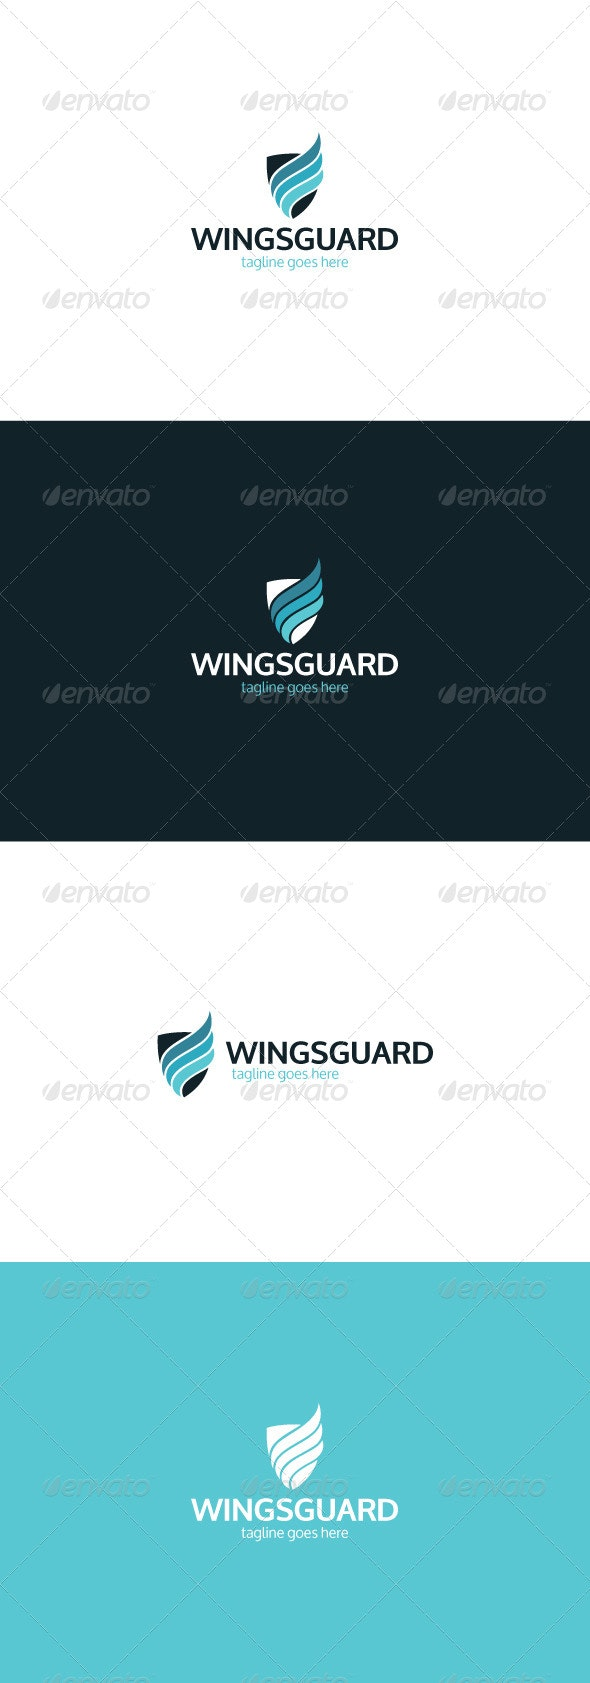 Wings Guard Logo - Vector Abstract